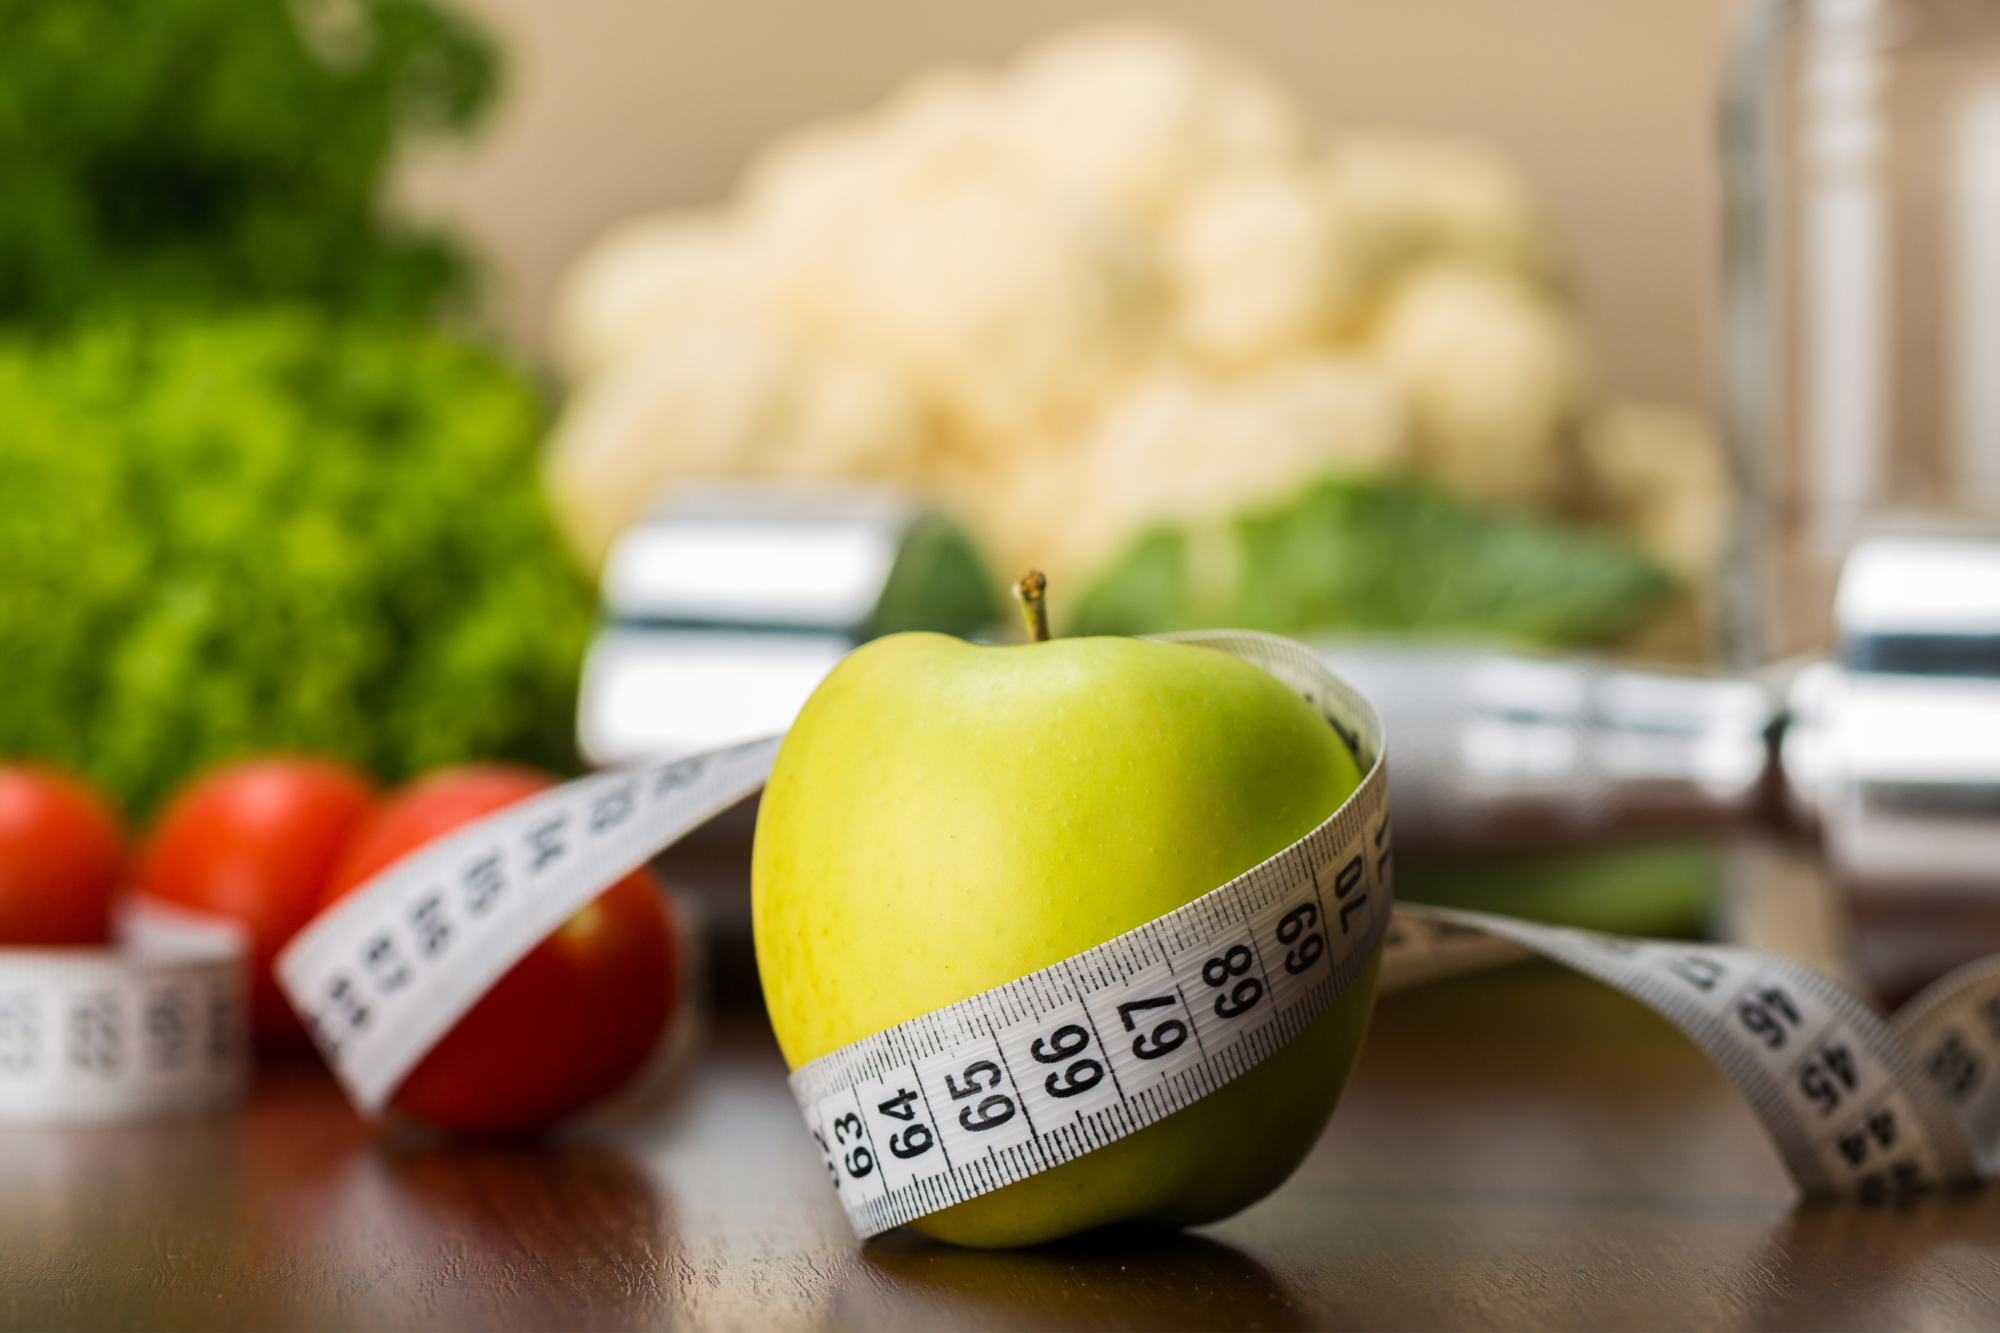 Should we advise patients to eat a diet based on their DNA?